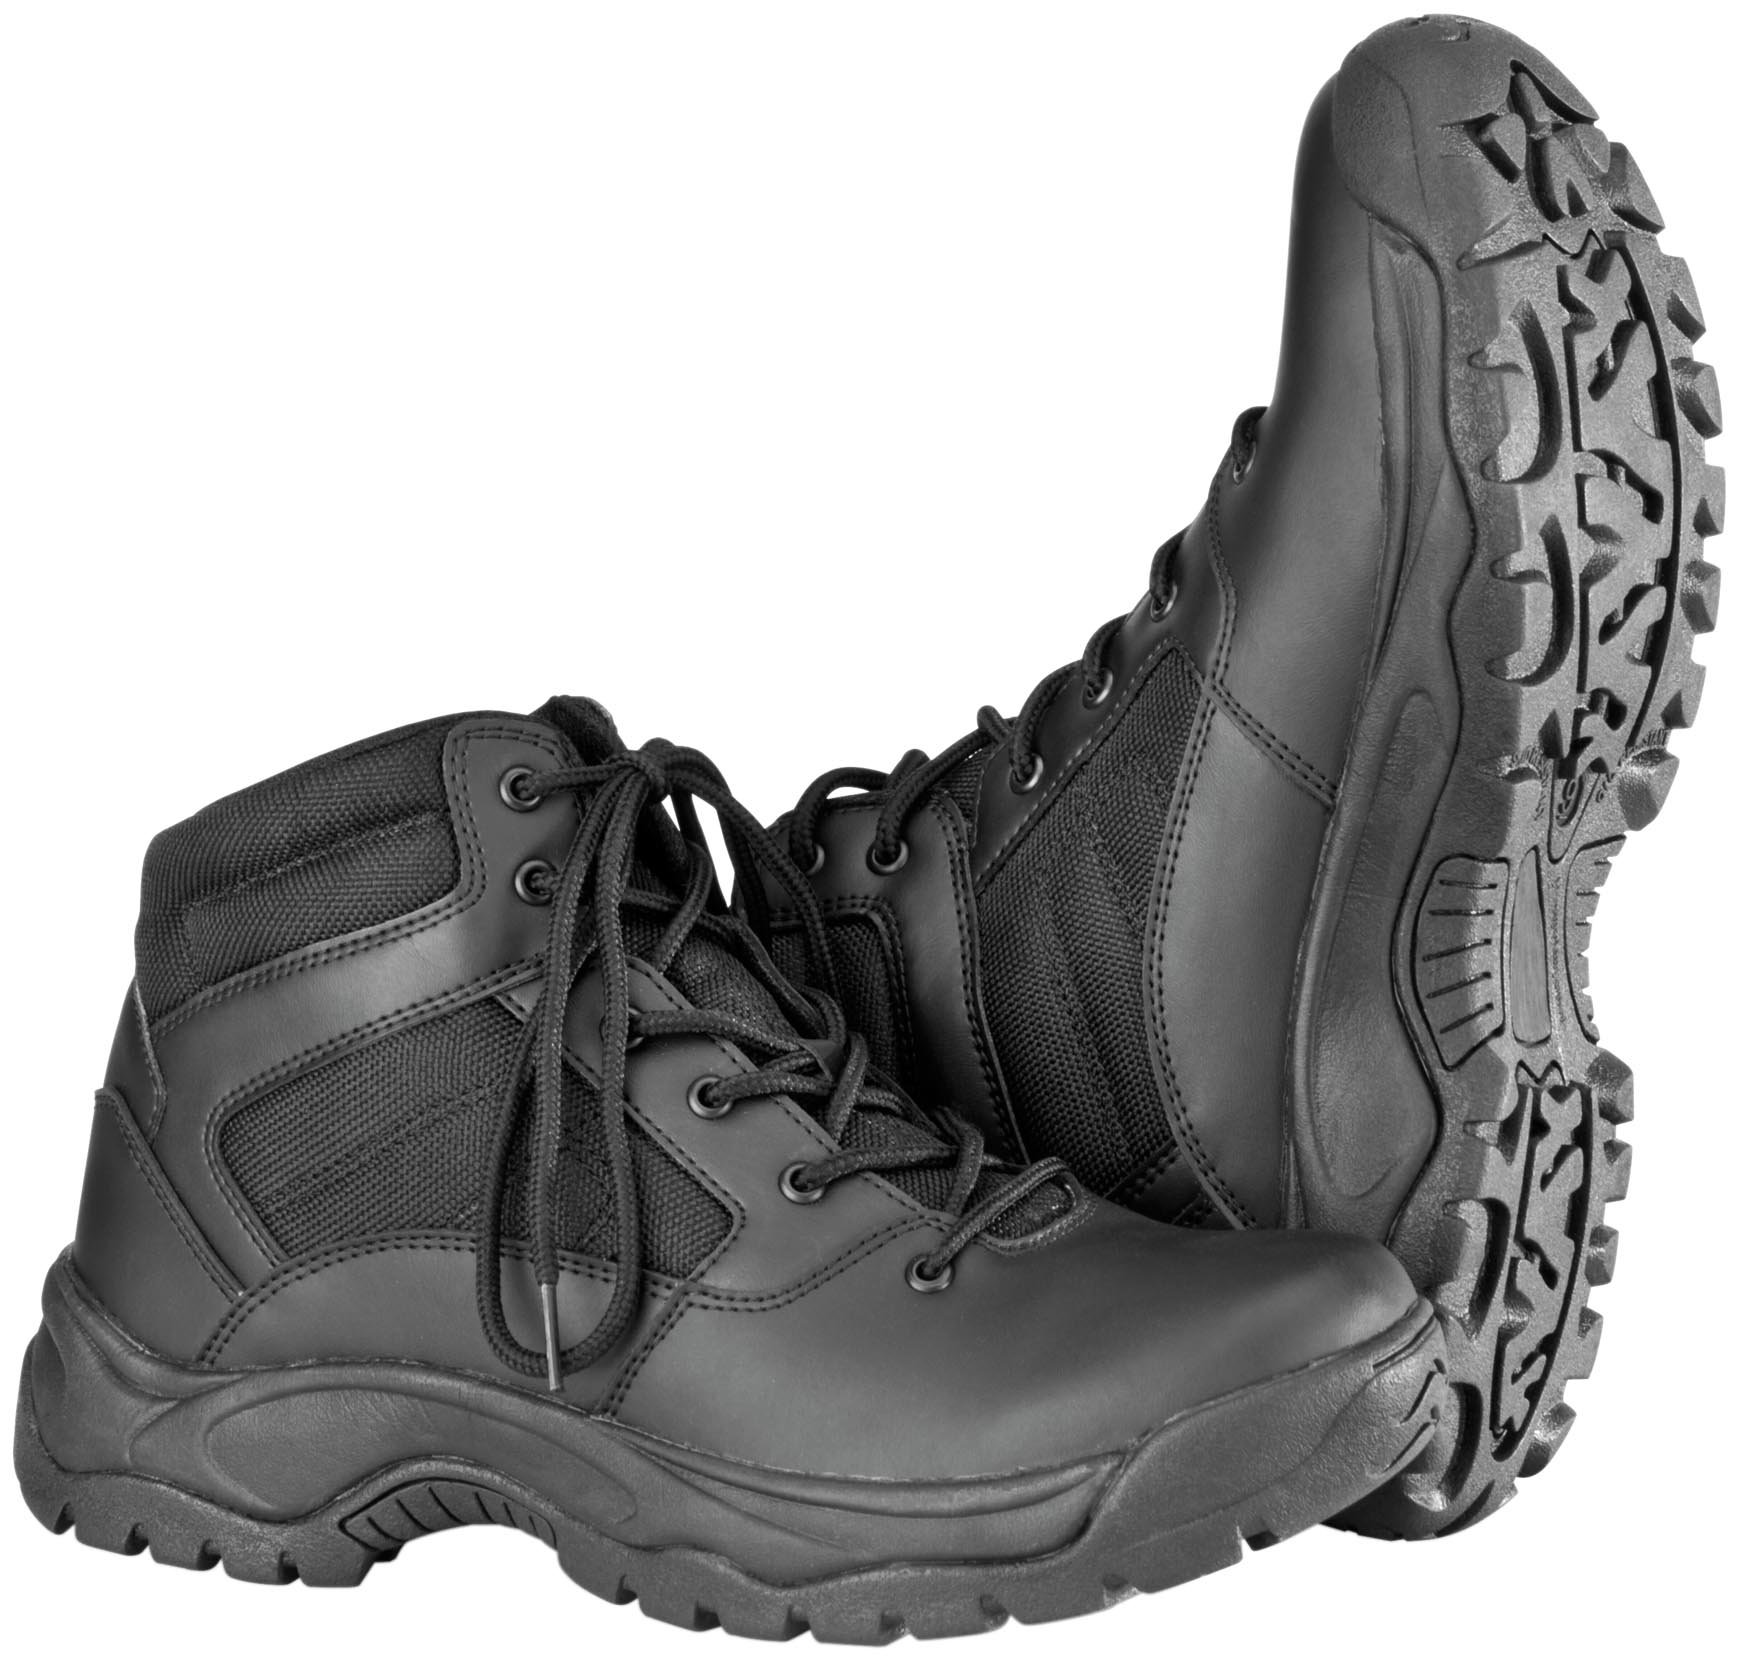 River Road Guardian Boots